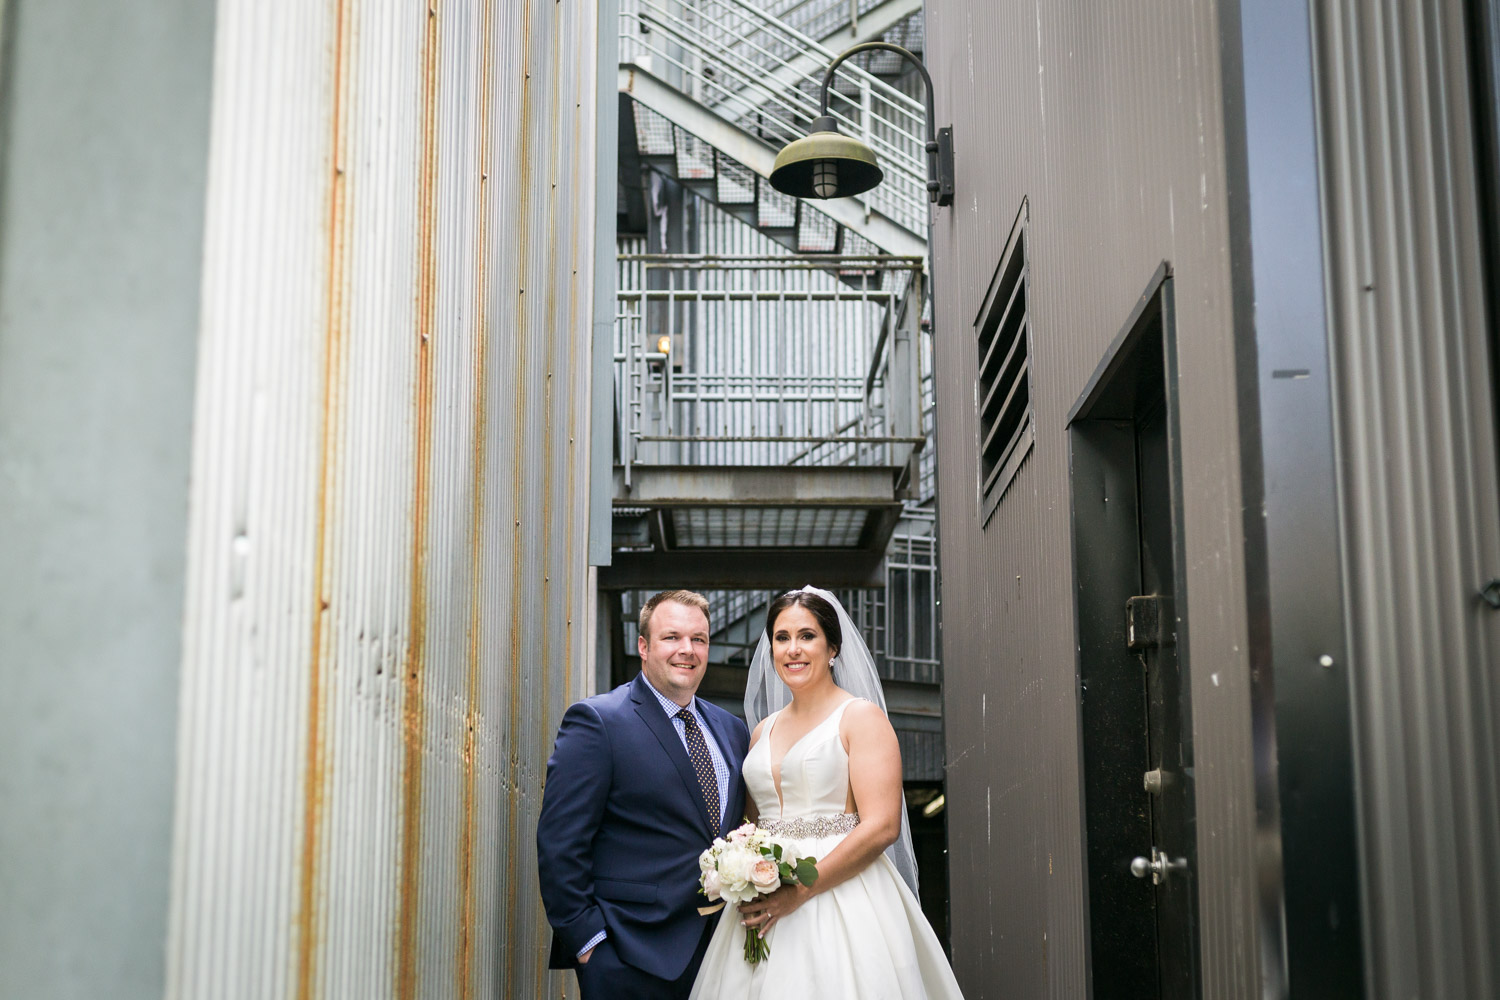 BRIDGES RESTAURANT WEDDING – CAROLYN & BRADY